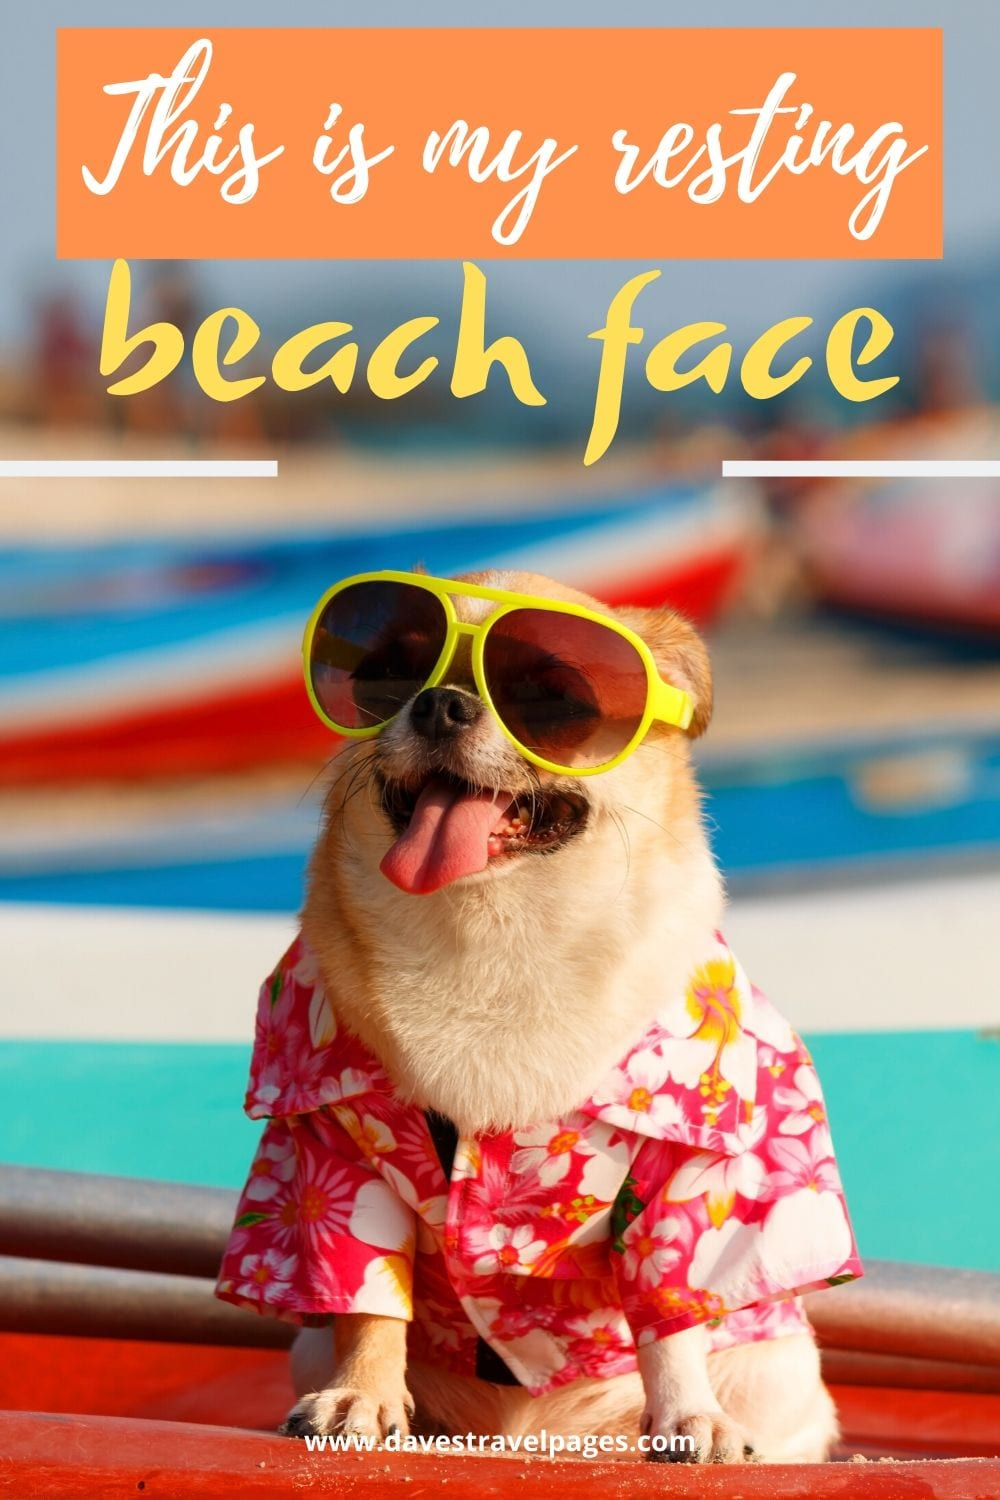 """Funny beach captions: """"This is my resting beach face."""""""